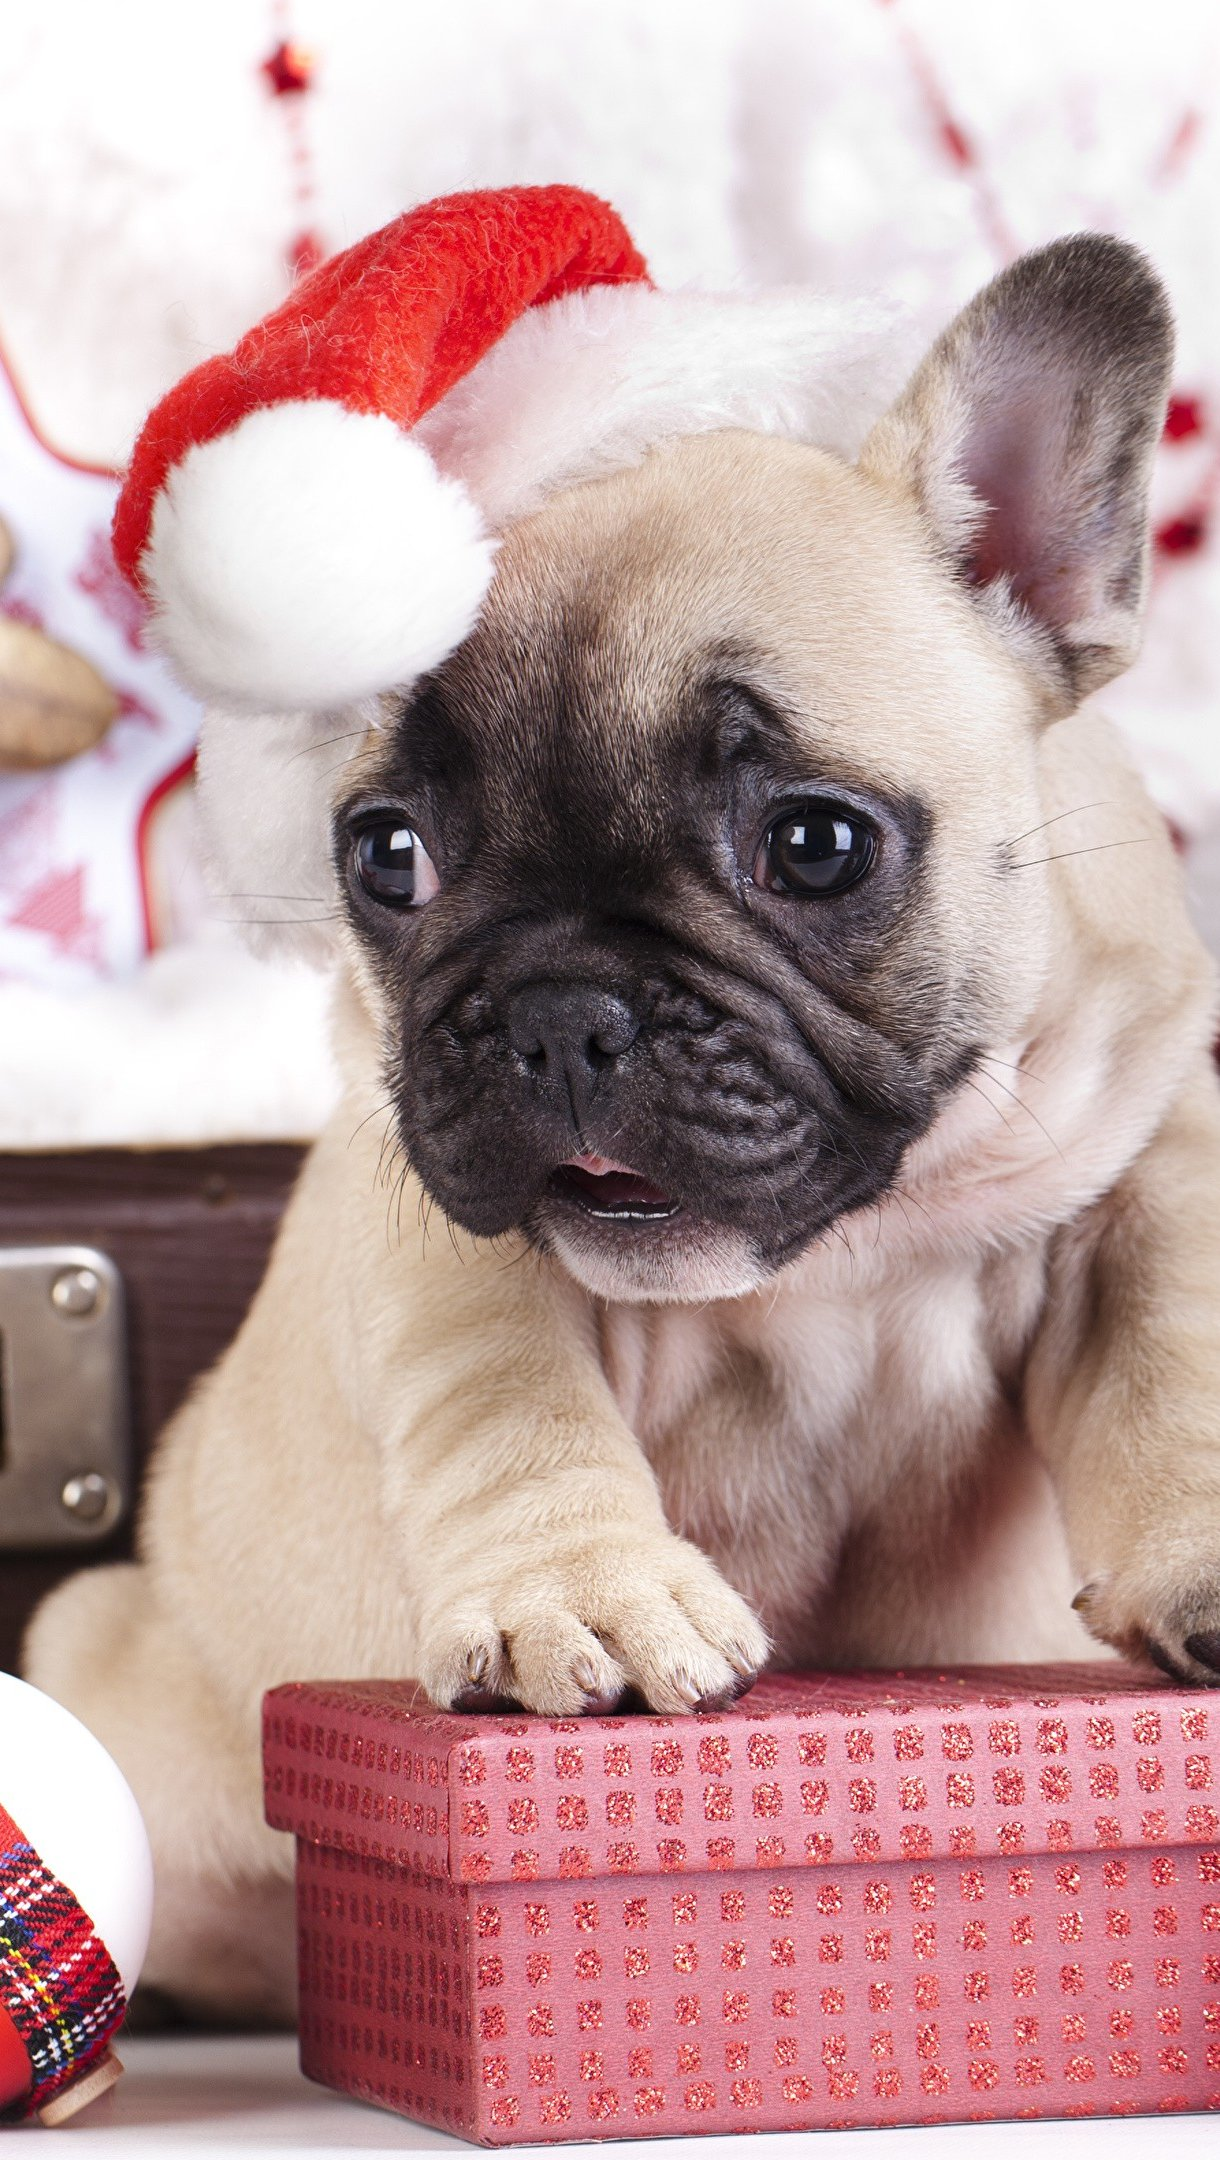 Wallpaper Pug puppy celebrating Christmas Vertical